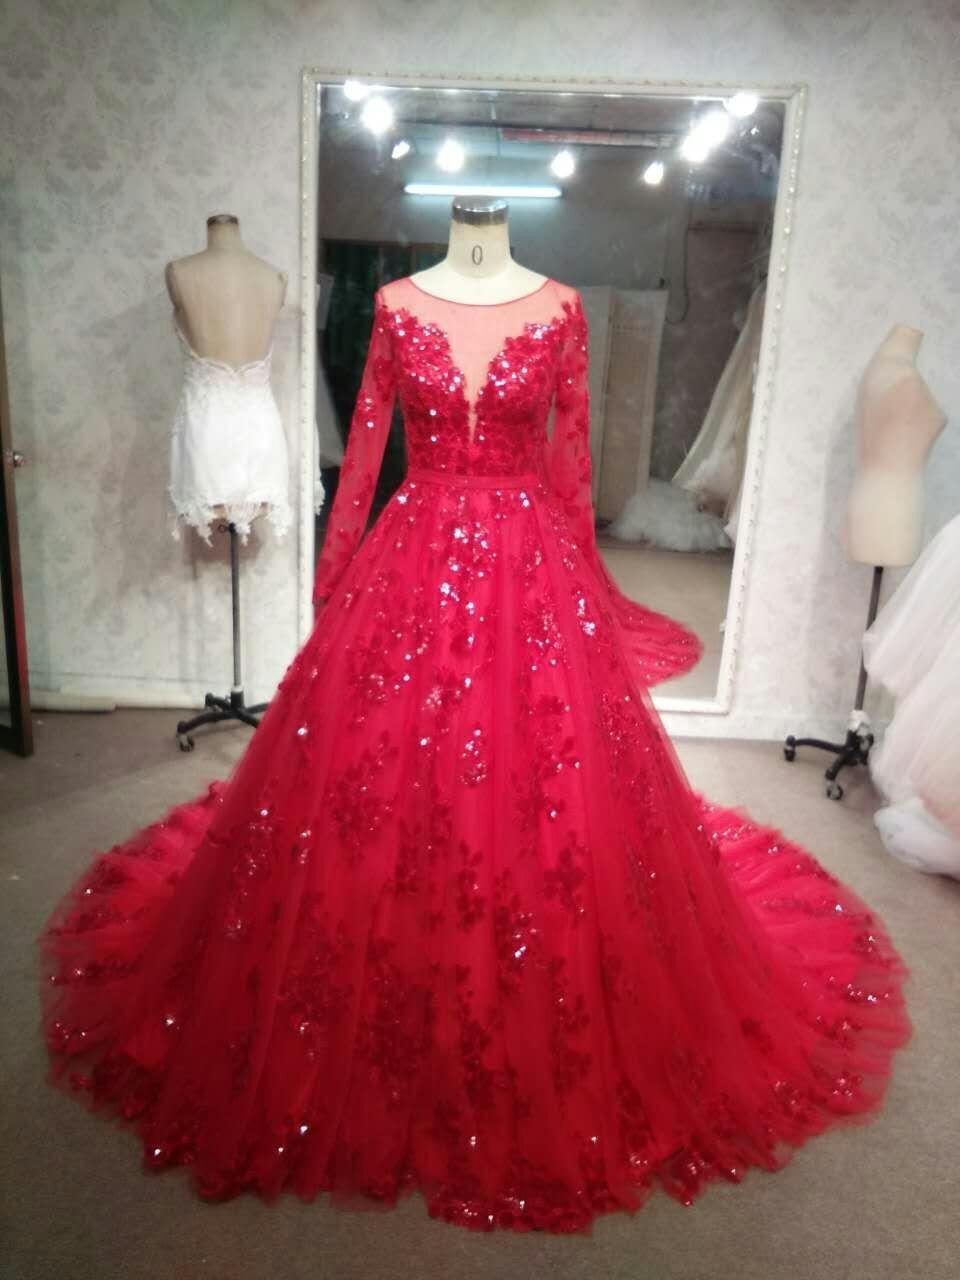 Long sleeve red wedding gowns darius cordell for Red wedding dresses with sleeves